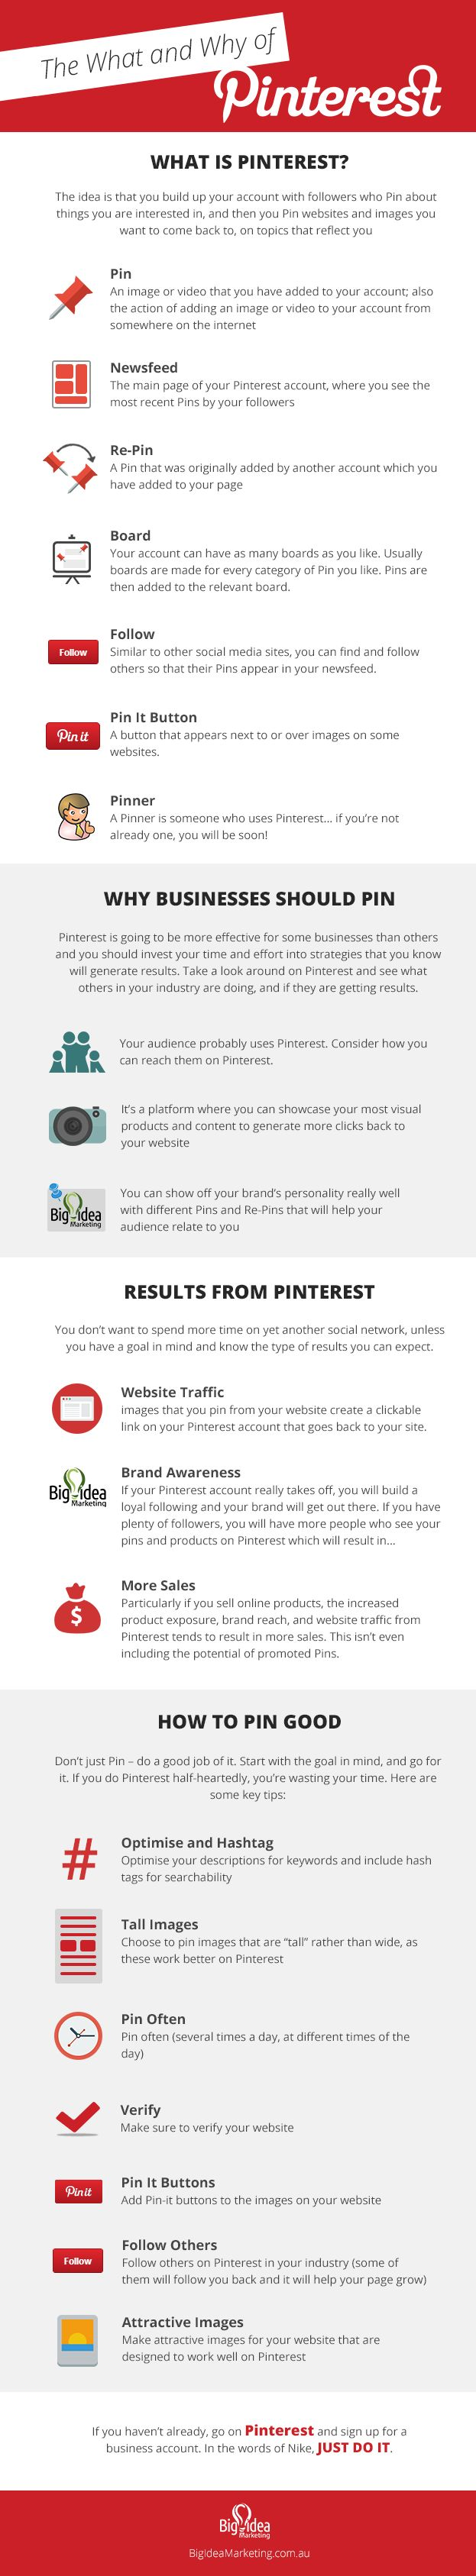 The What and Why of Pinterest for Business - #infographic #socialmedia #pinterest